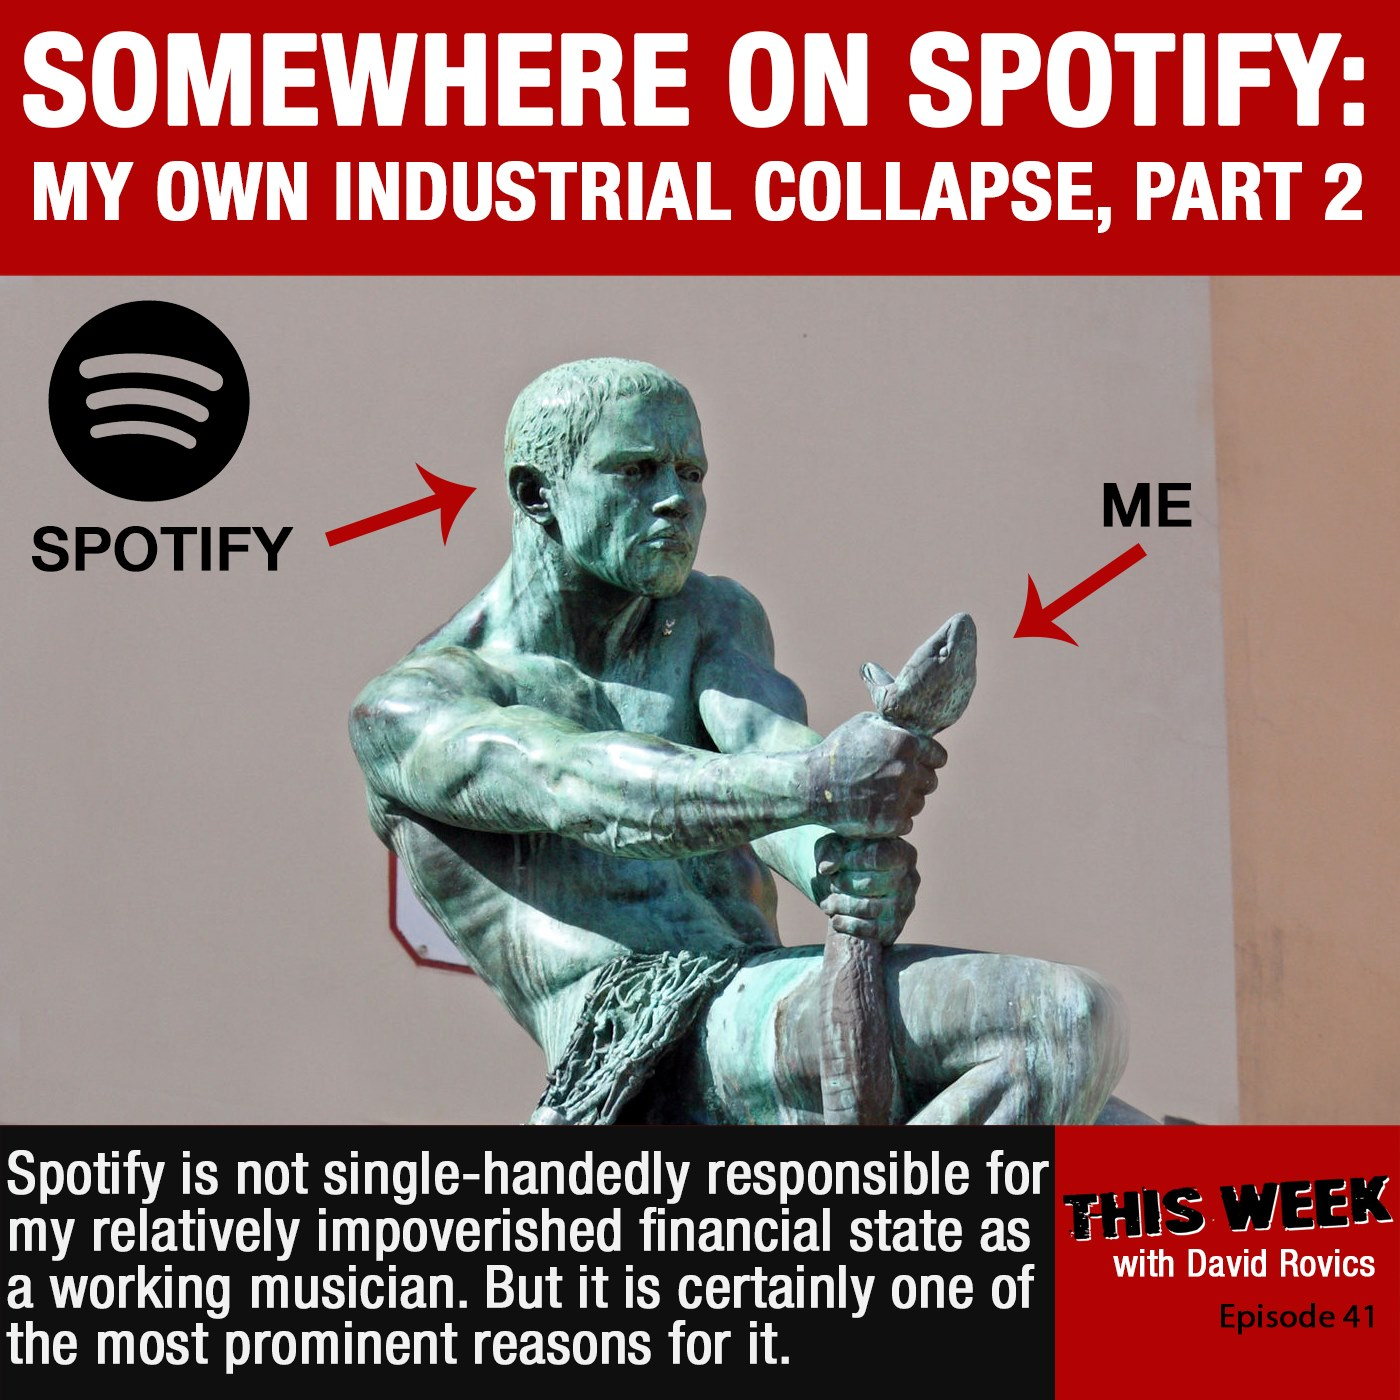 Somewhere On Spotify:  My Own Industrial Collapse, Part 2